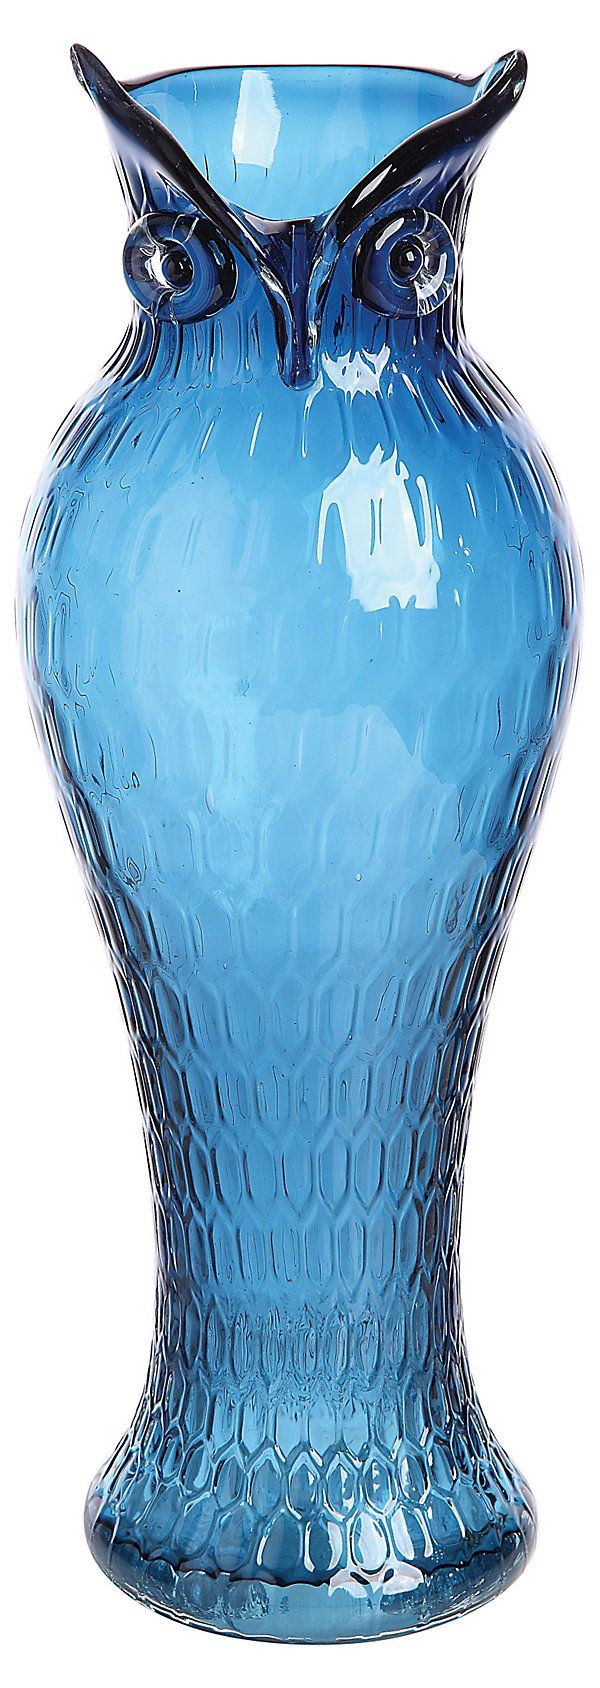 "Cool vase!!! One Kings Lane - Country Fresh - 14"" Blue Owl Vase..........this could go on my Christmas wish list!"